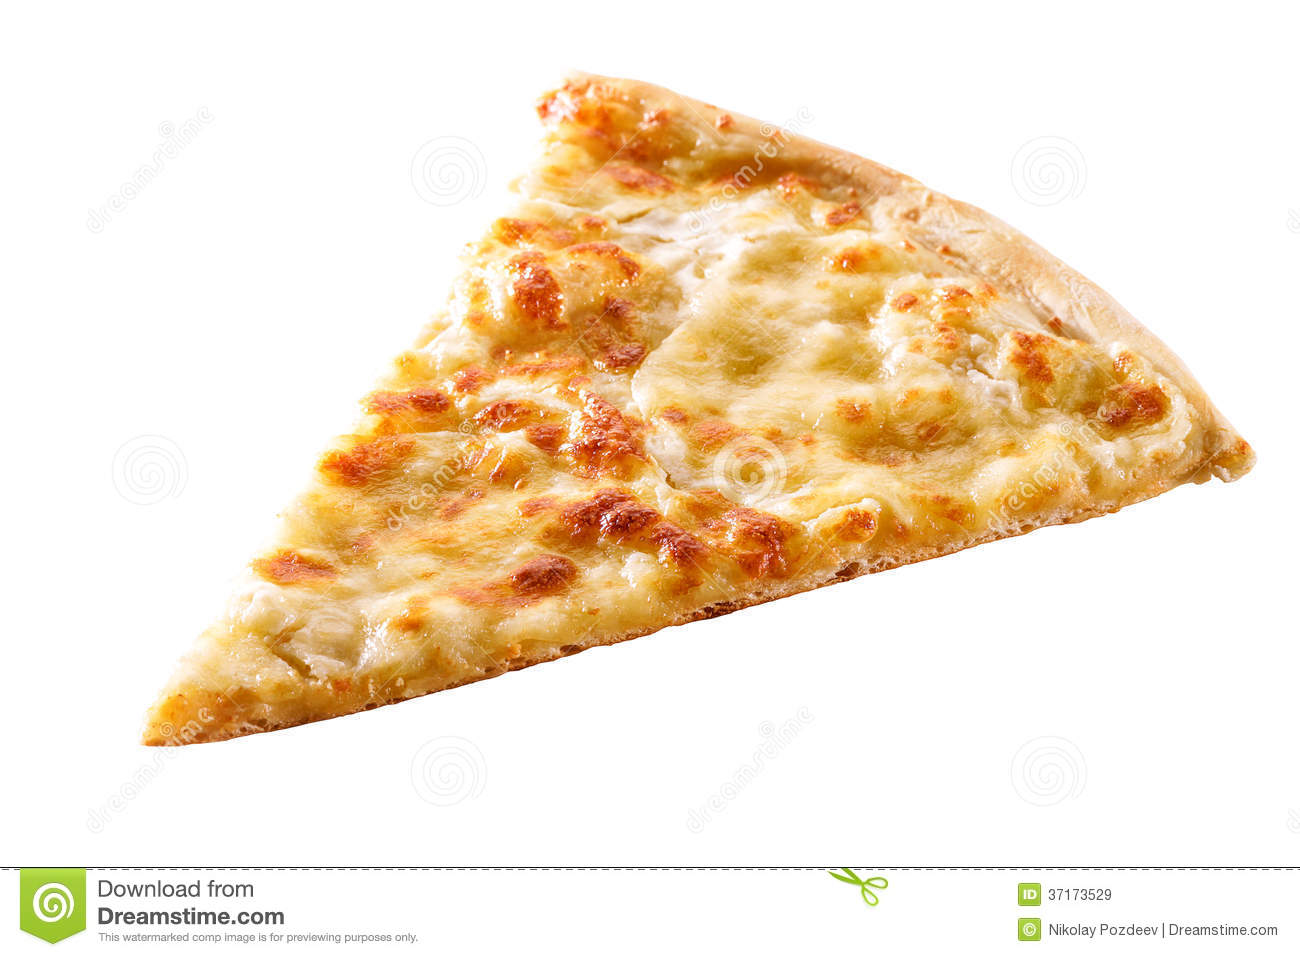 Slice of cheese pizza close-up .